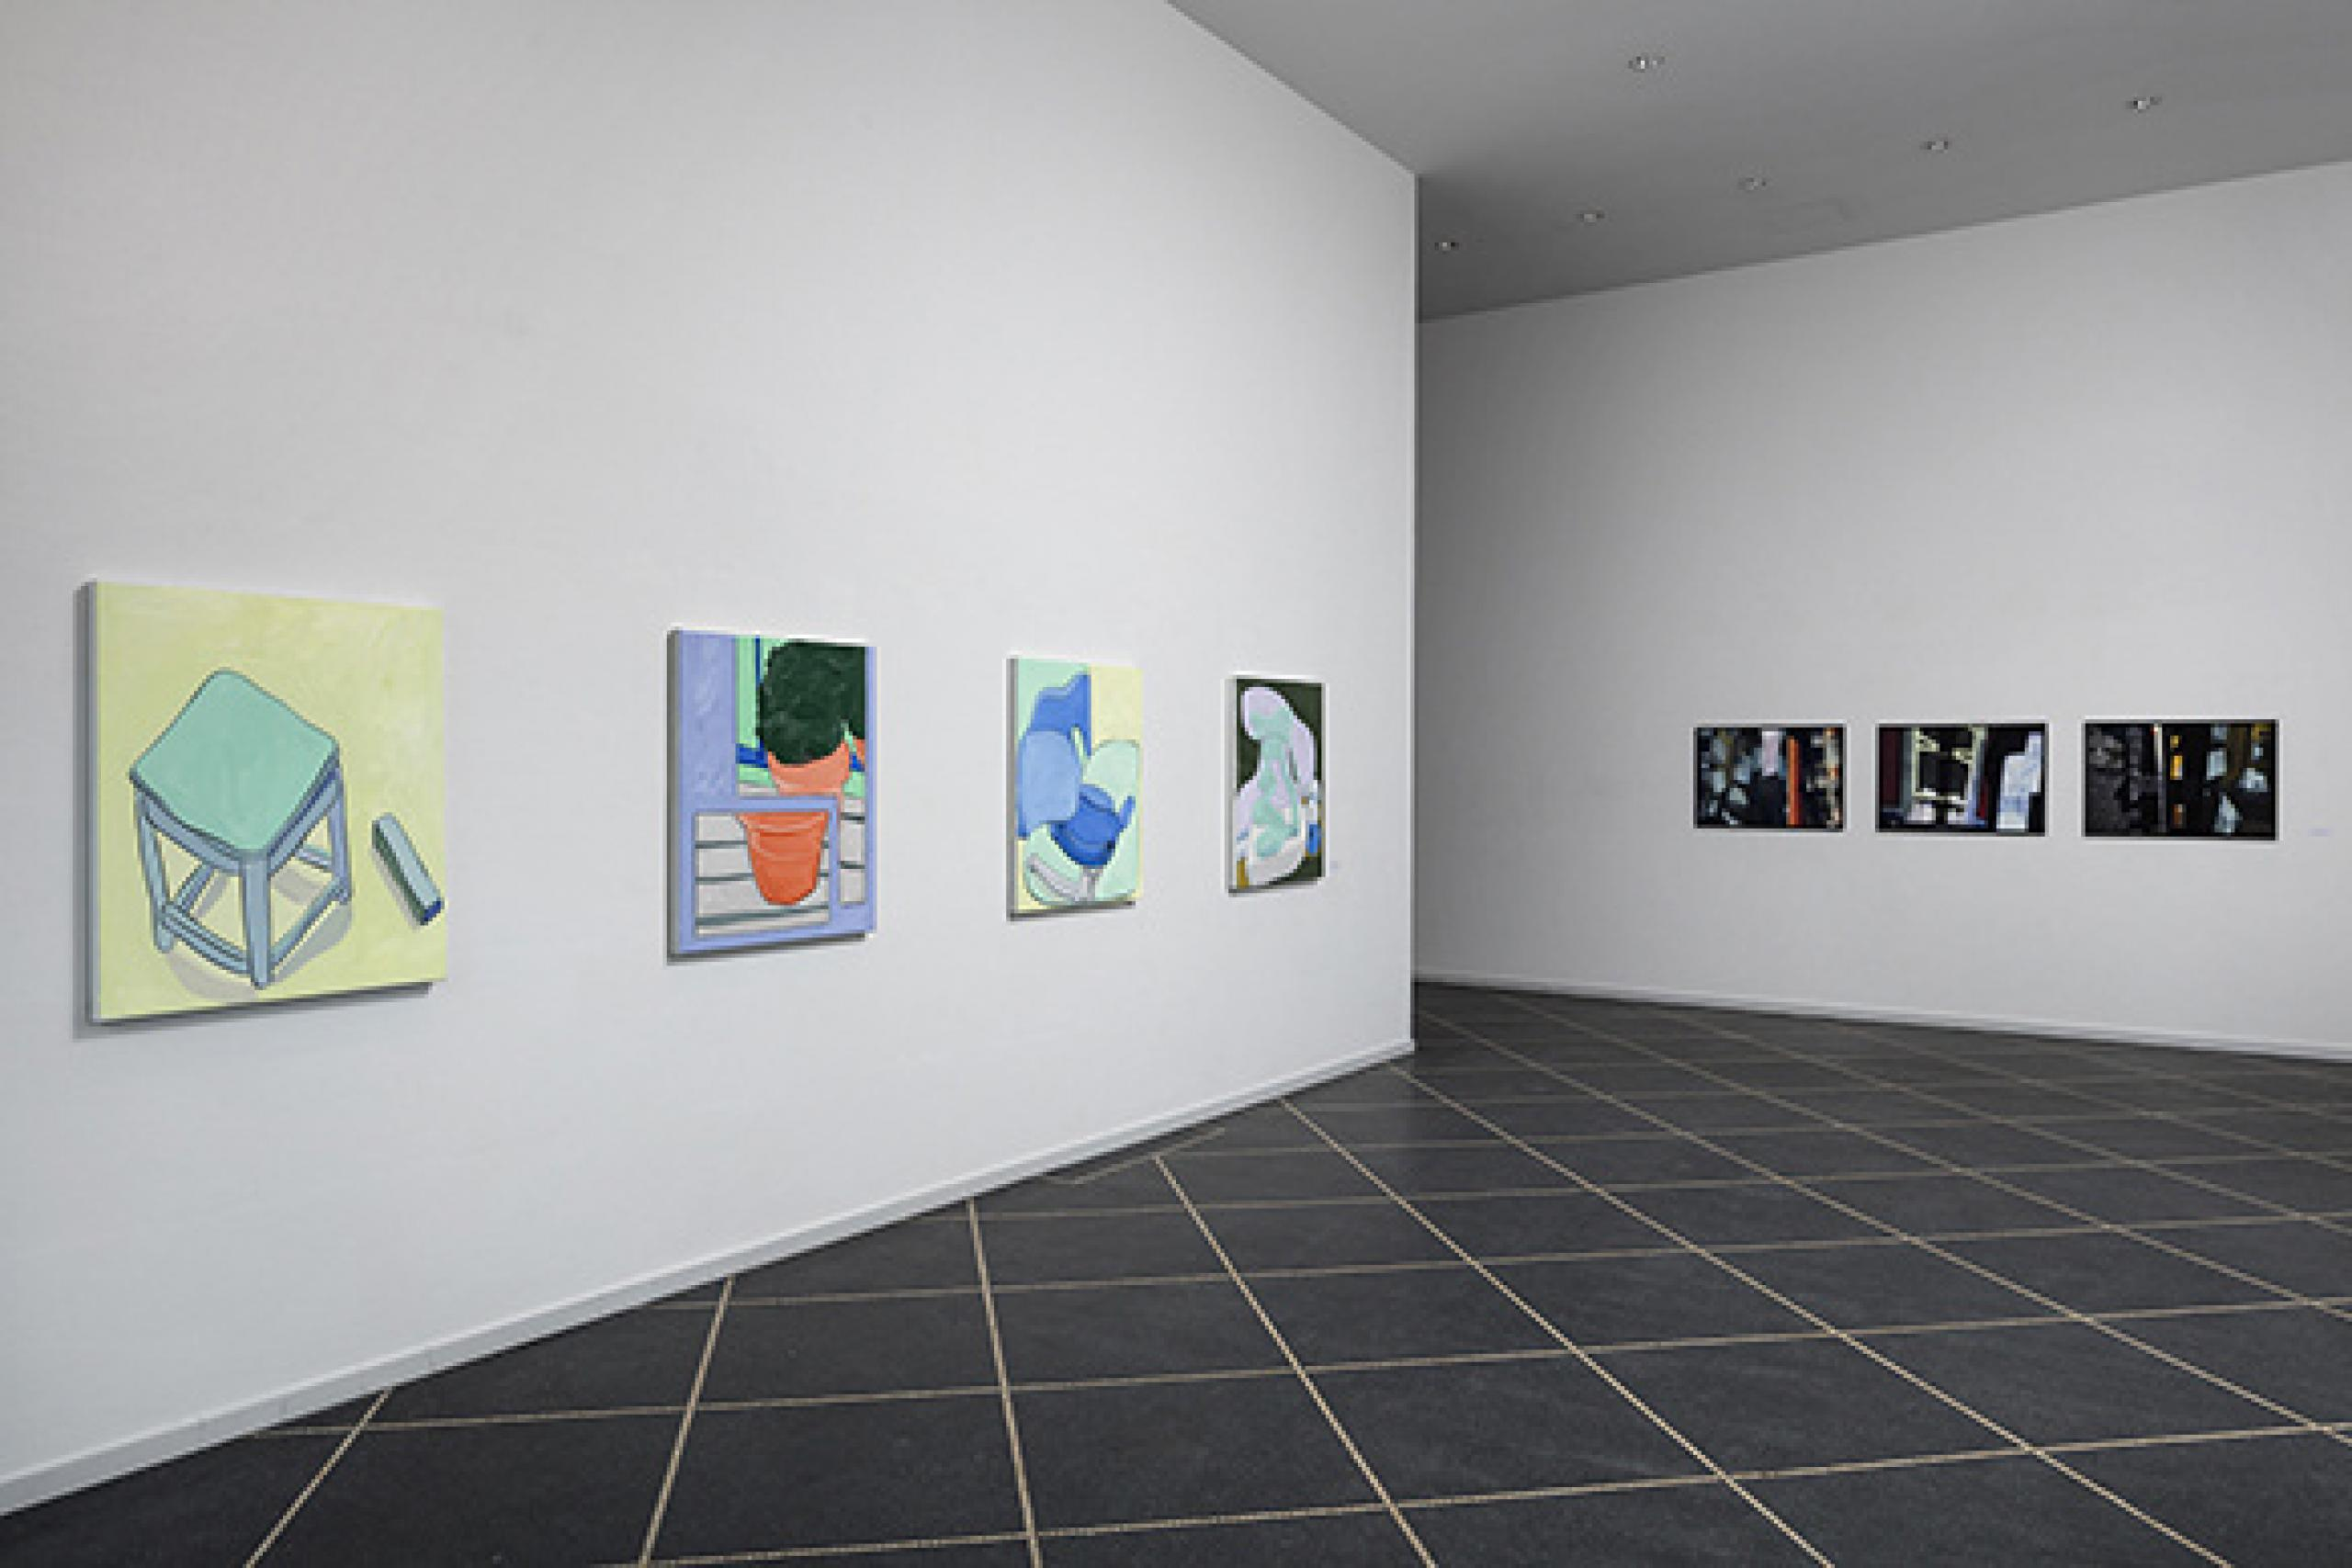 """New Works"" (2018) Exhibition view of a group show featuring Martin Erik Andersen, Stig Brøgger, Morten Buch, Jiri Georg Dokoupil, Andreas Eriksson, Olav Christopher Jenssen, Pernille With Madsen, Kehnet Nielsen, Lawrence Weiner, Troels Wörsel at Susanne Ottesen Photo: Anders Sune Berg"